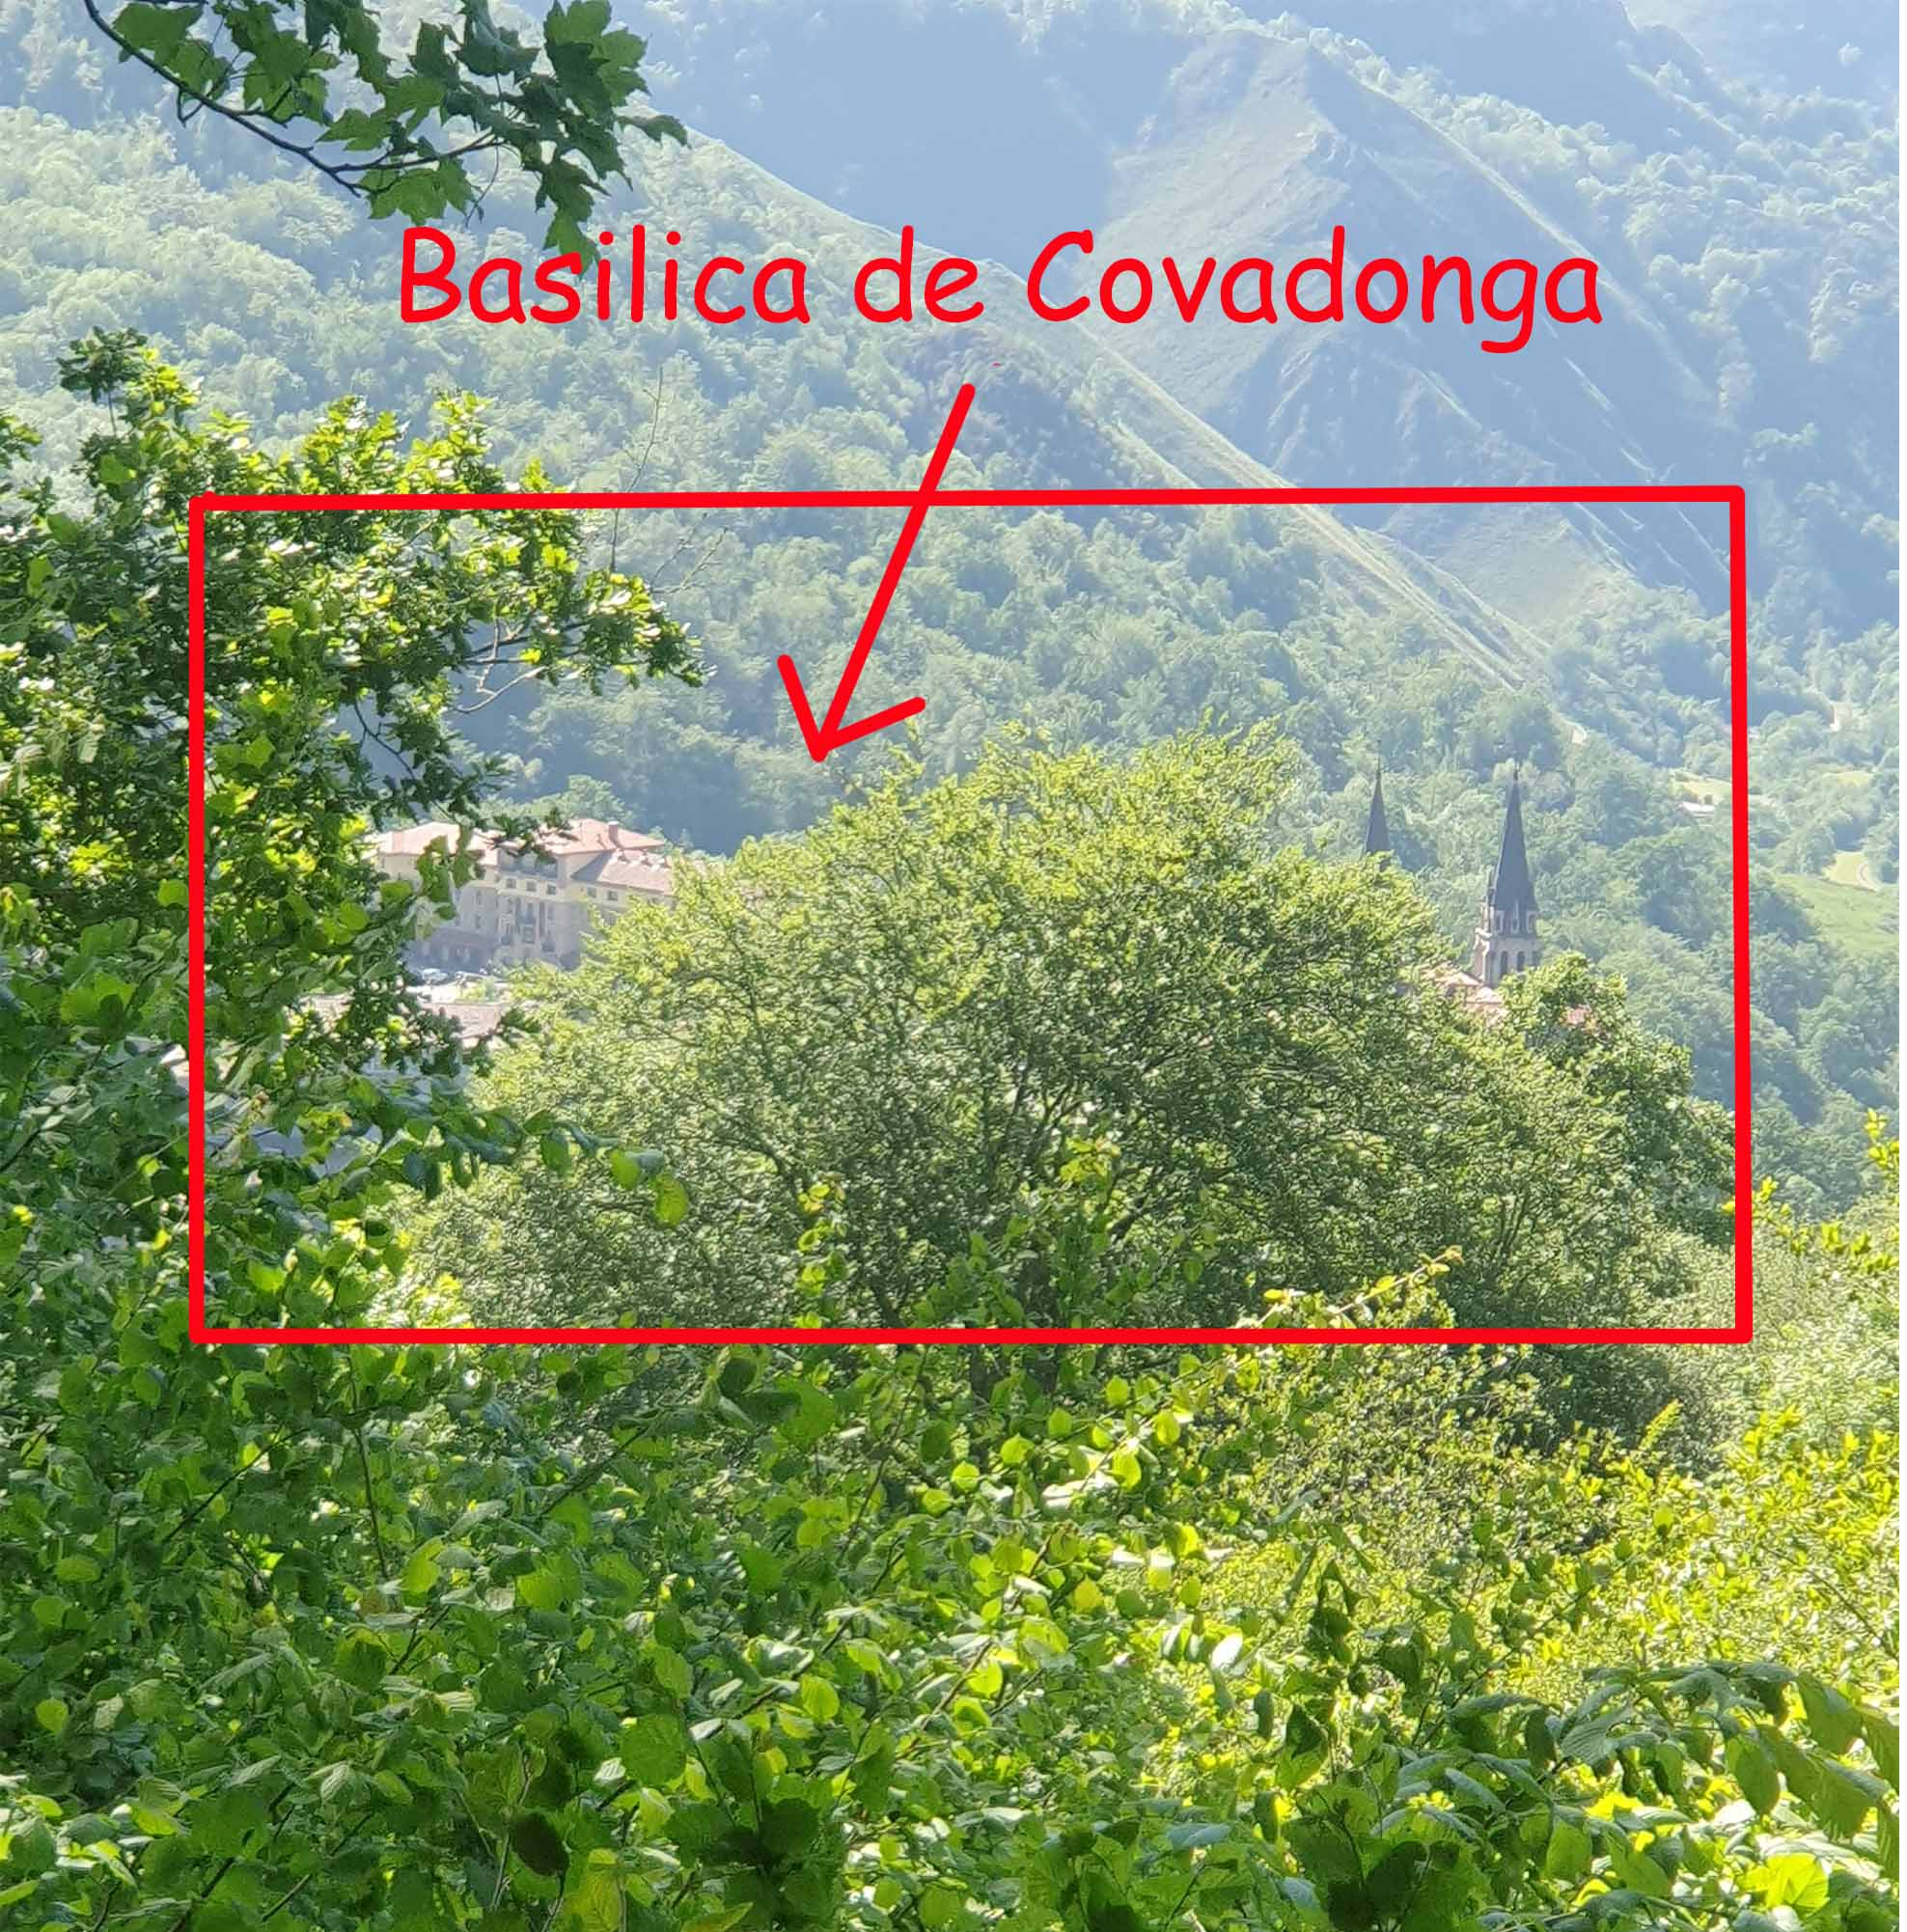 The view of basilica de Covadonga was hidden